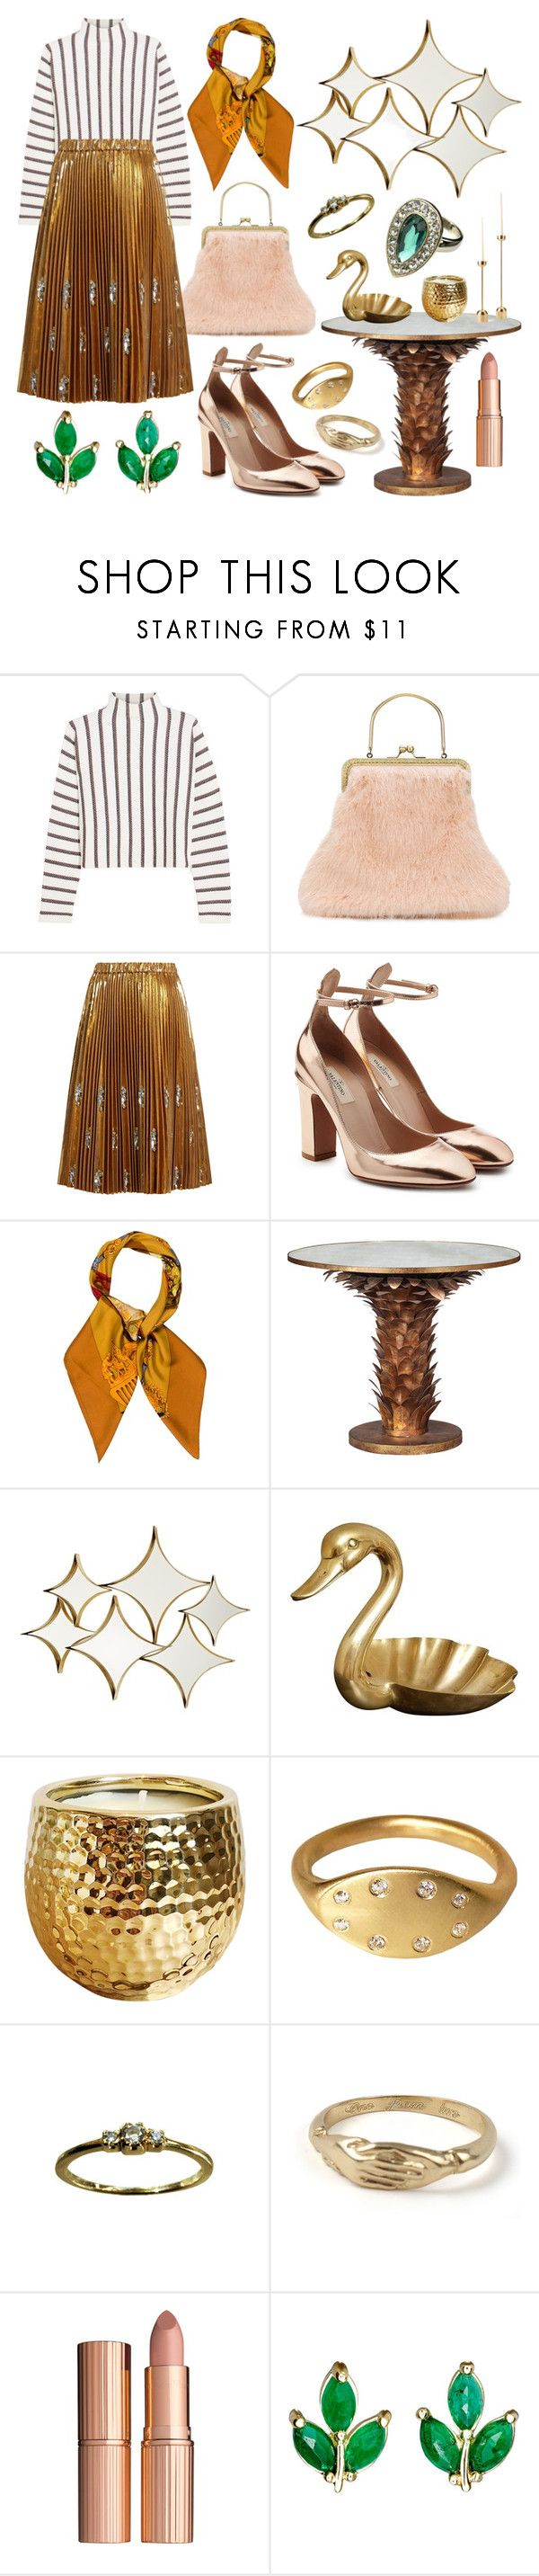 """All That Glitters"" by heybigtrender on Polyvore featuring Maje, Shrimps, N°21, Valentino, Hermès, Allegra, Universal Lighting and Decor, Charlotte Tilbury, Finn and Monsoon"